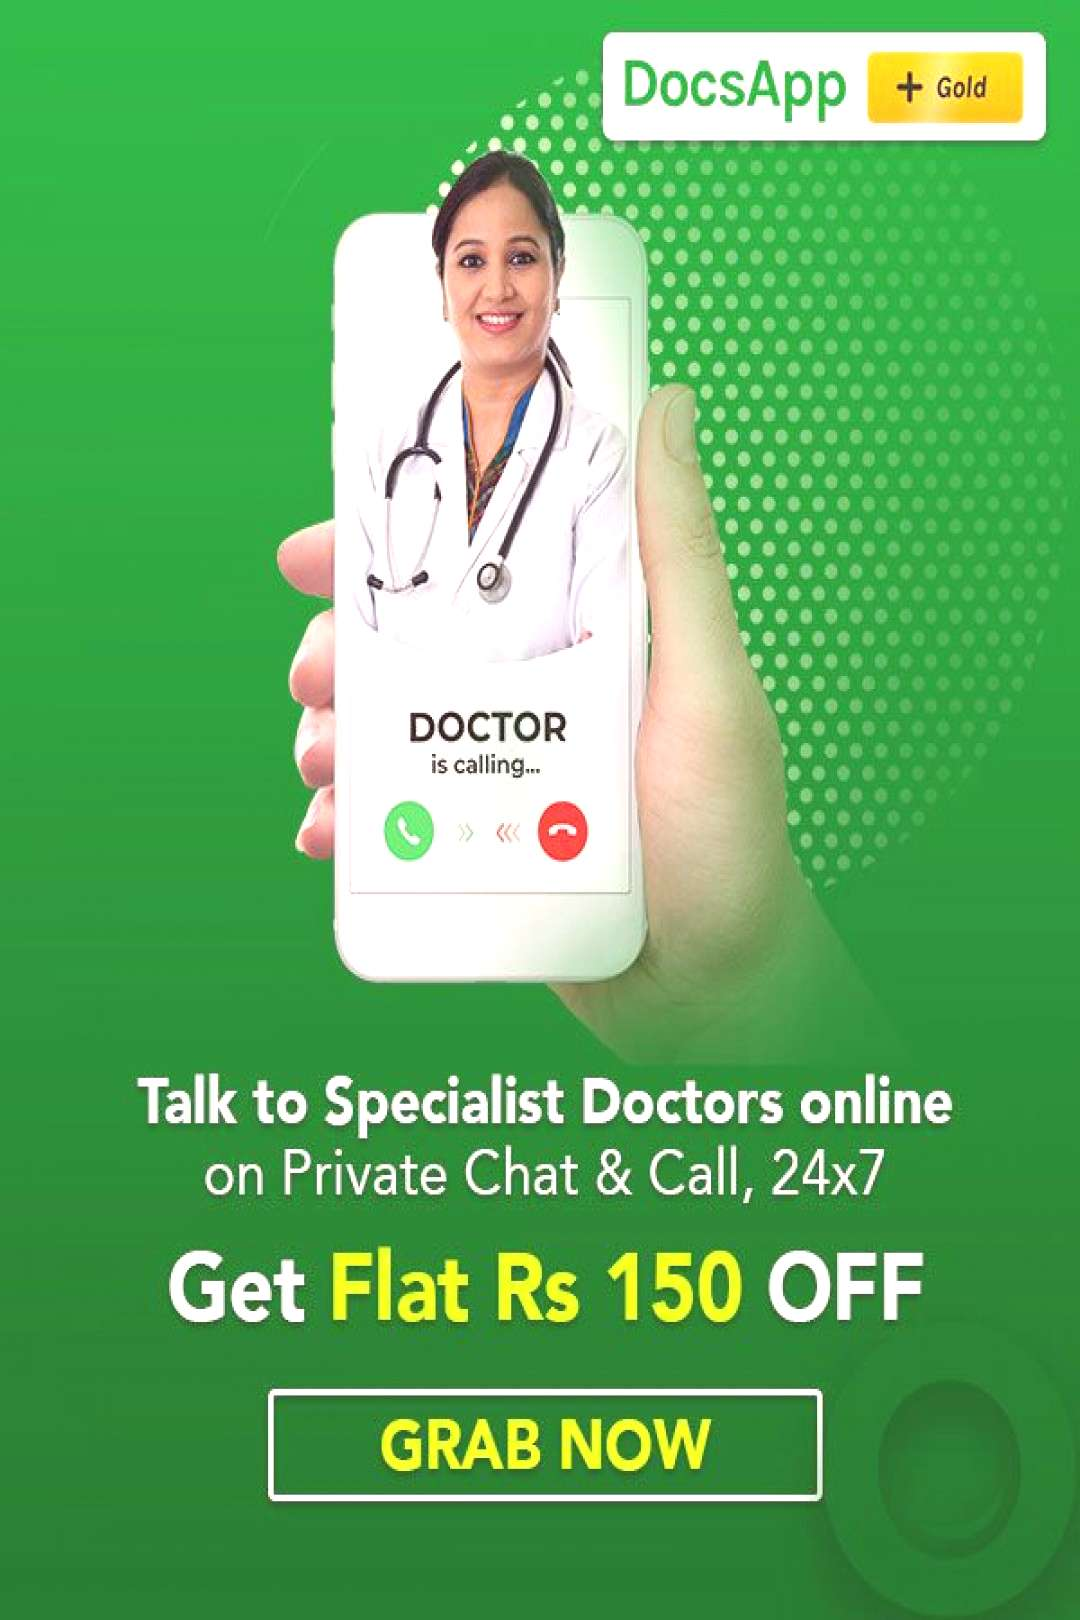 Health and Wellness: Talk to Specialist Doctors Online On Chat or Call via DocsApp! Fear going out